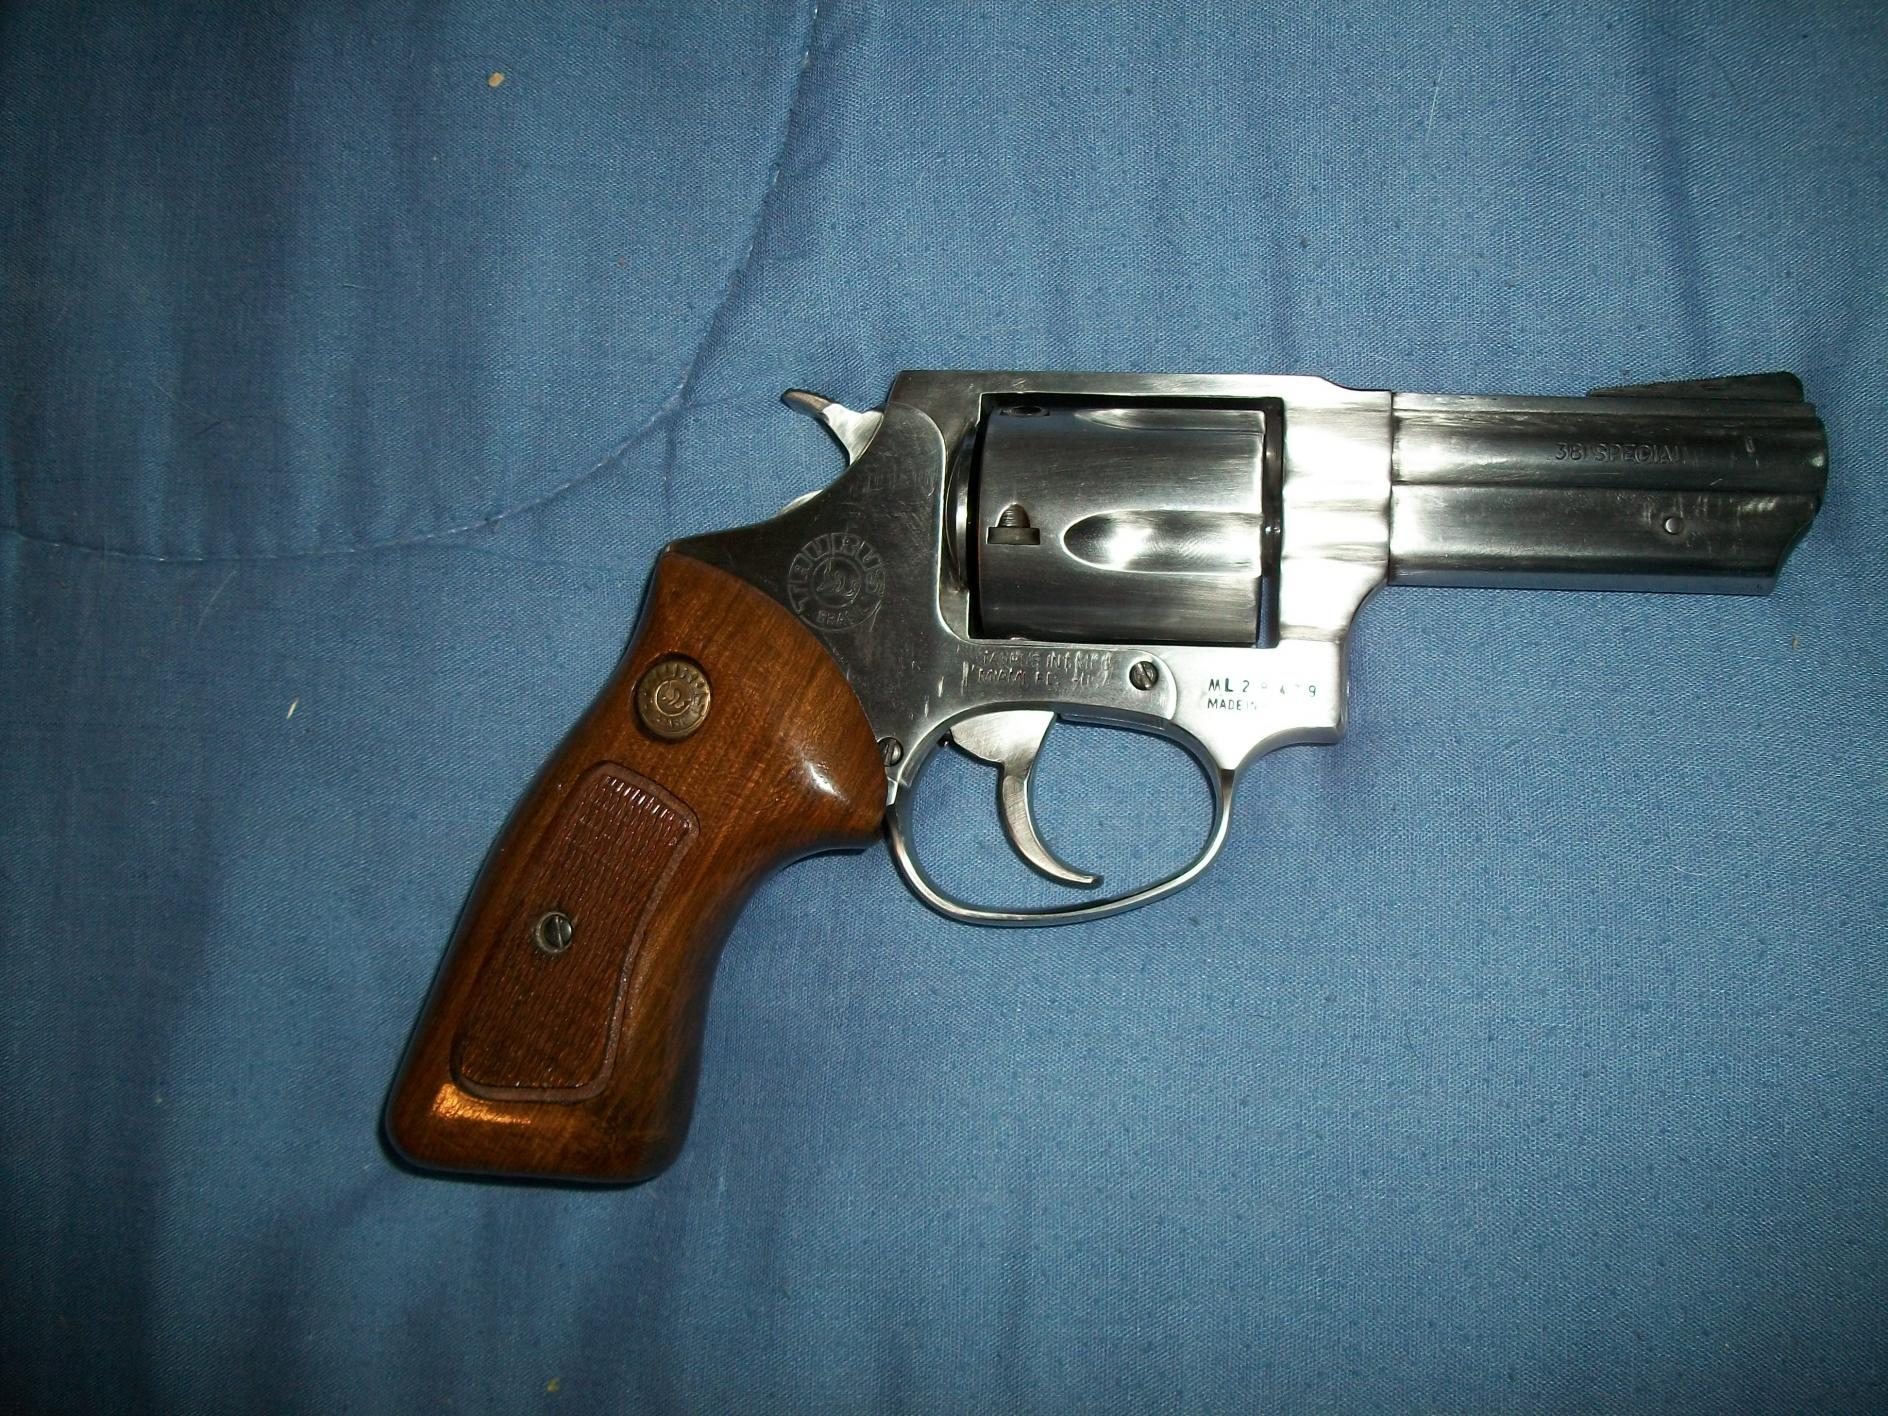 """Official """"I love my beat up carry gun"""" picture thread-101_1797.jpg"""